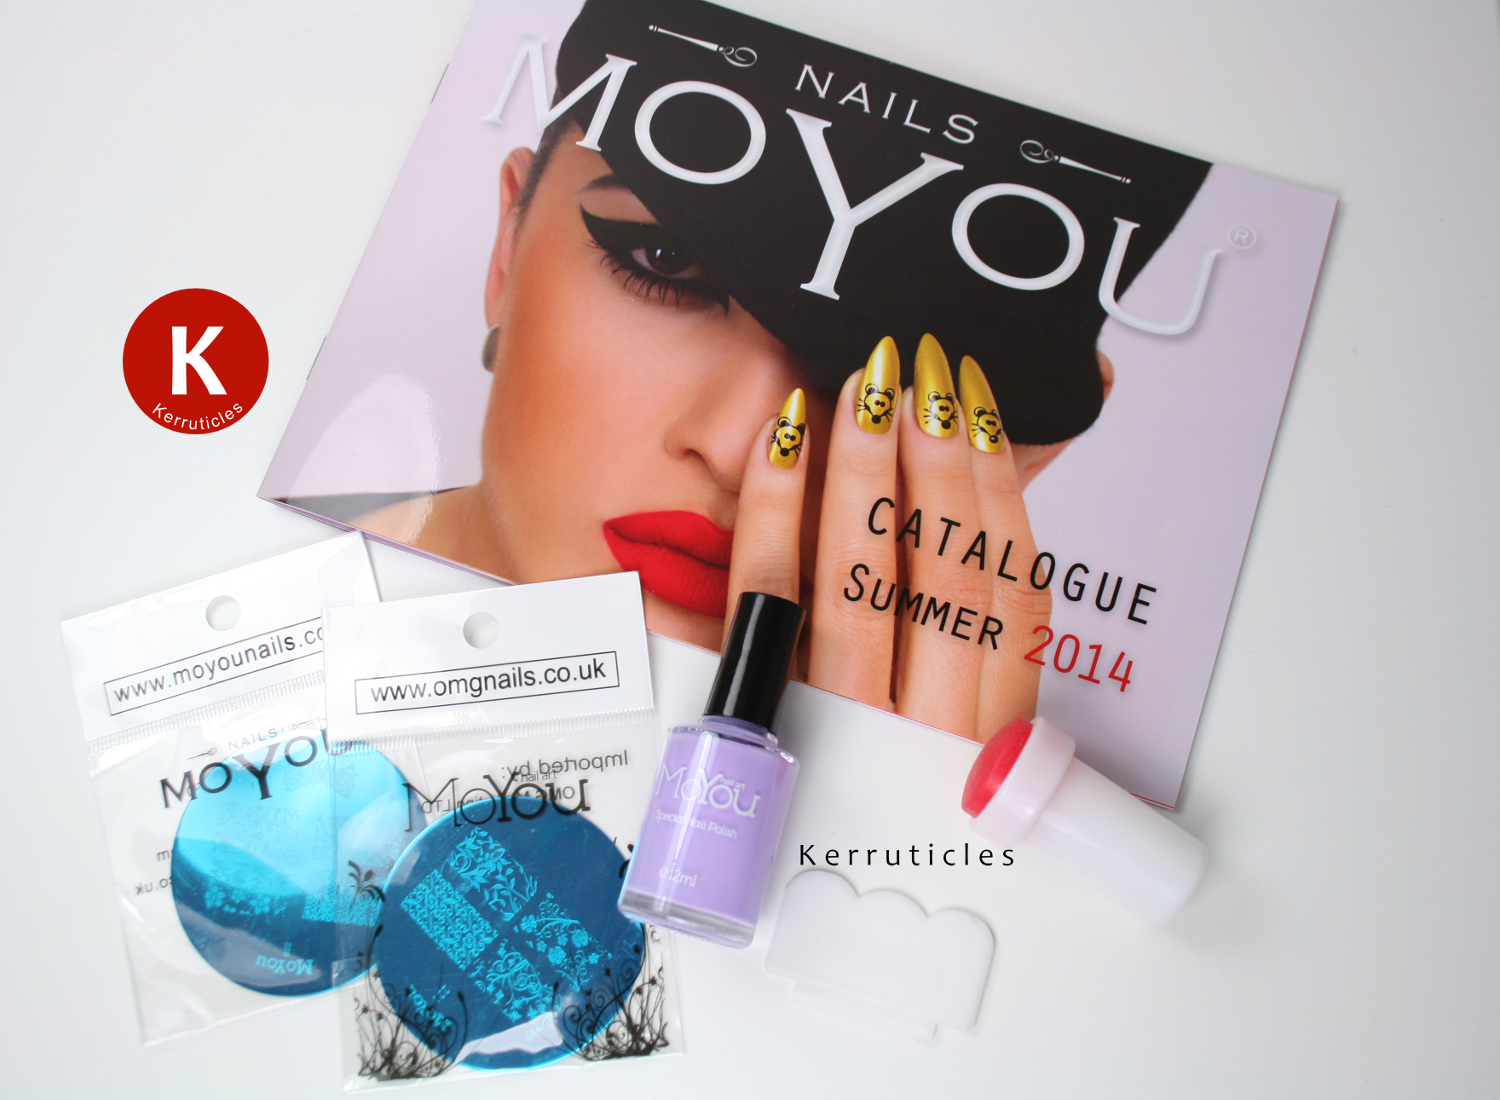 MoYou Nails catalogue, stamping polish, plates, stamper and scraper